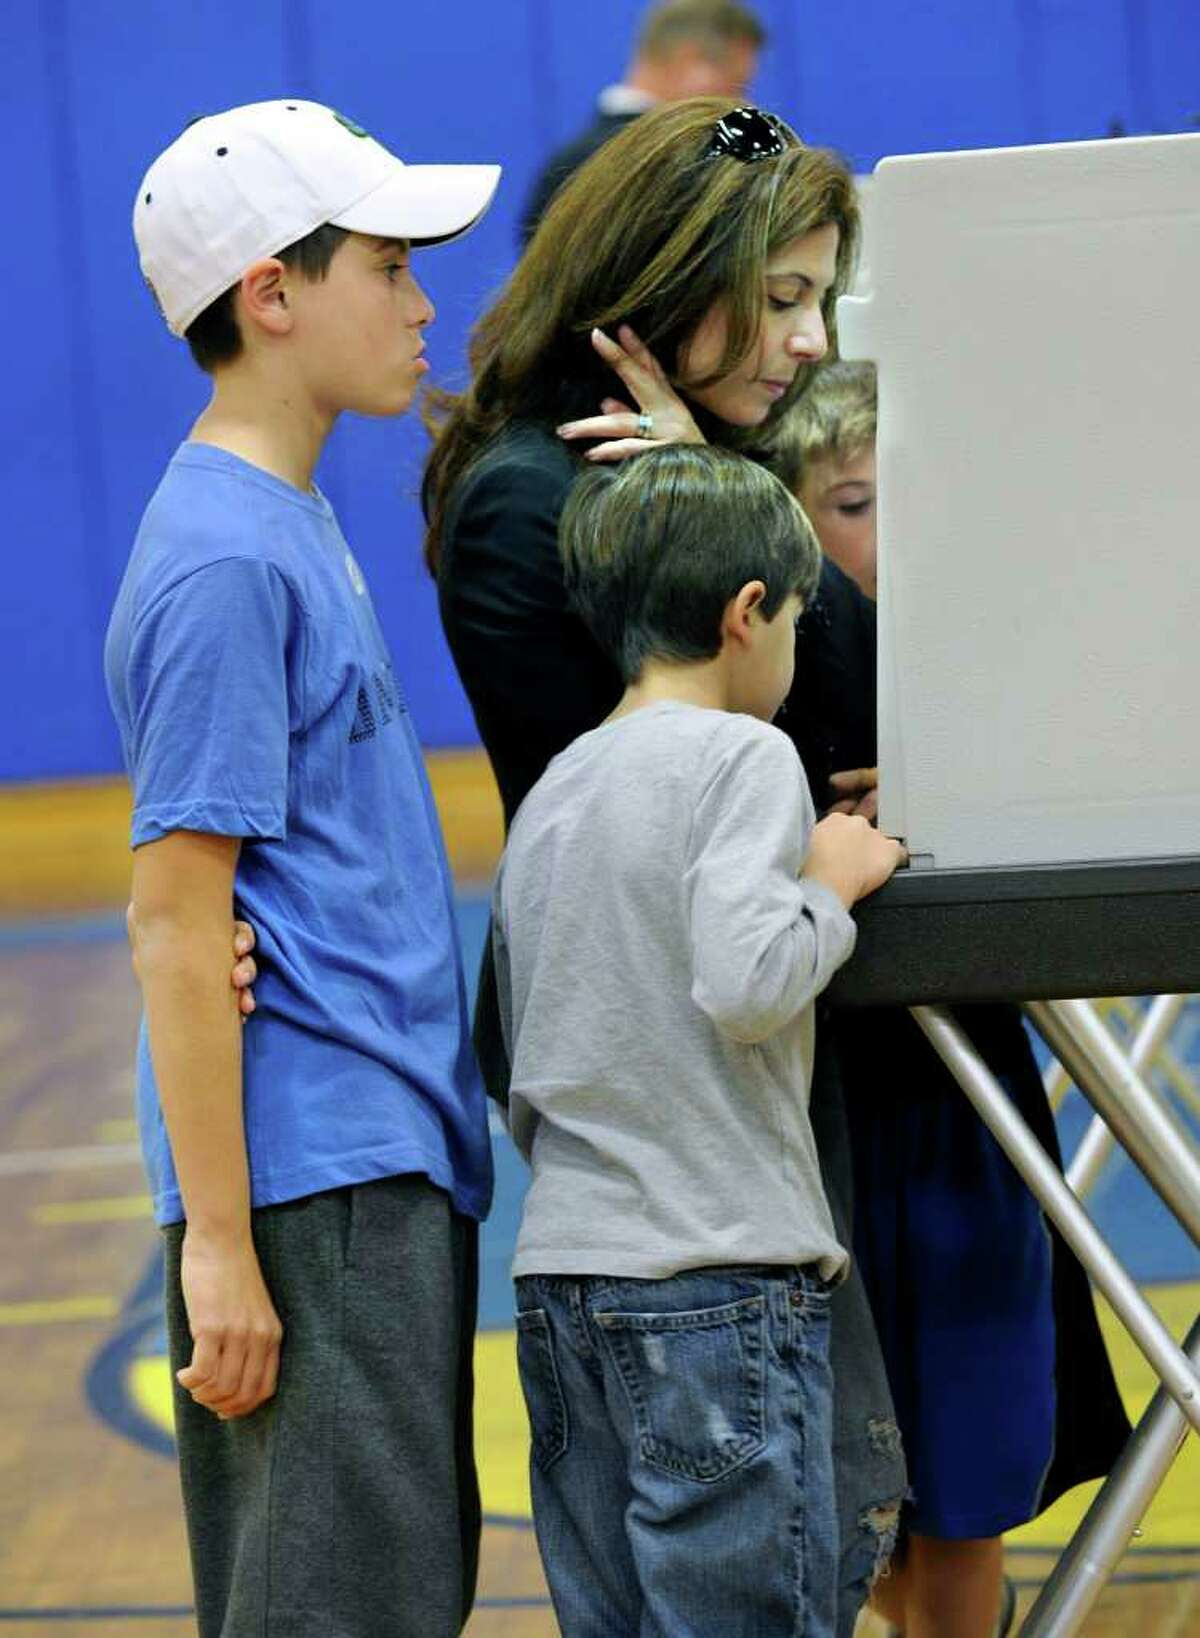 Diane Culhane, brought her sons with her to vote at the Brookfield High school polling place Tuesday. The boys are from left, Brenan, 12, Lucas, 7 and Jack, 9. Photo taken Tuesday, Nov. 8, 2011.